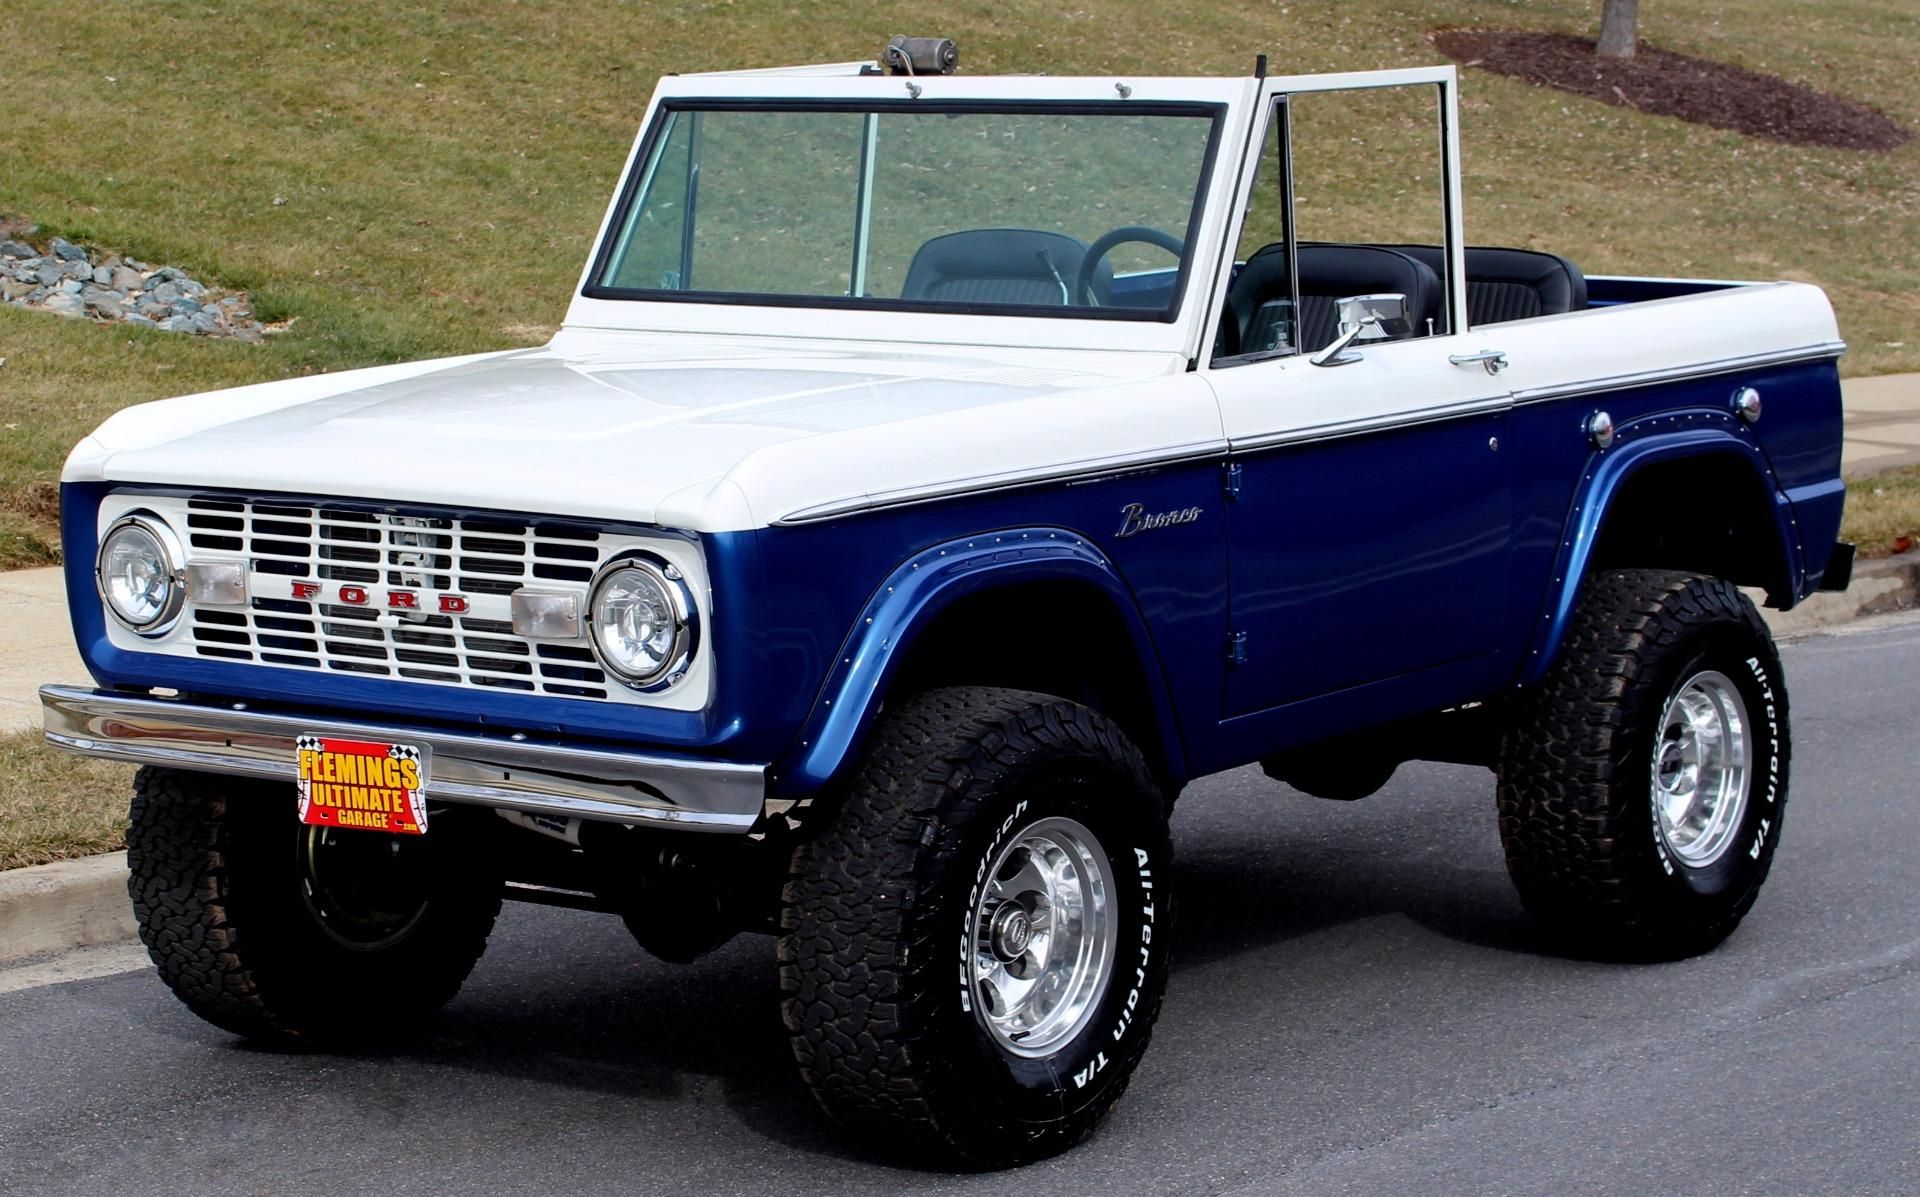 1975 Ford Bronco Pro Touring 4x4 With Less Than 100 Test Miles